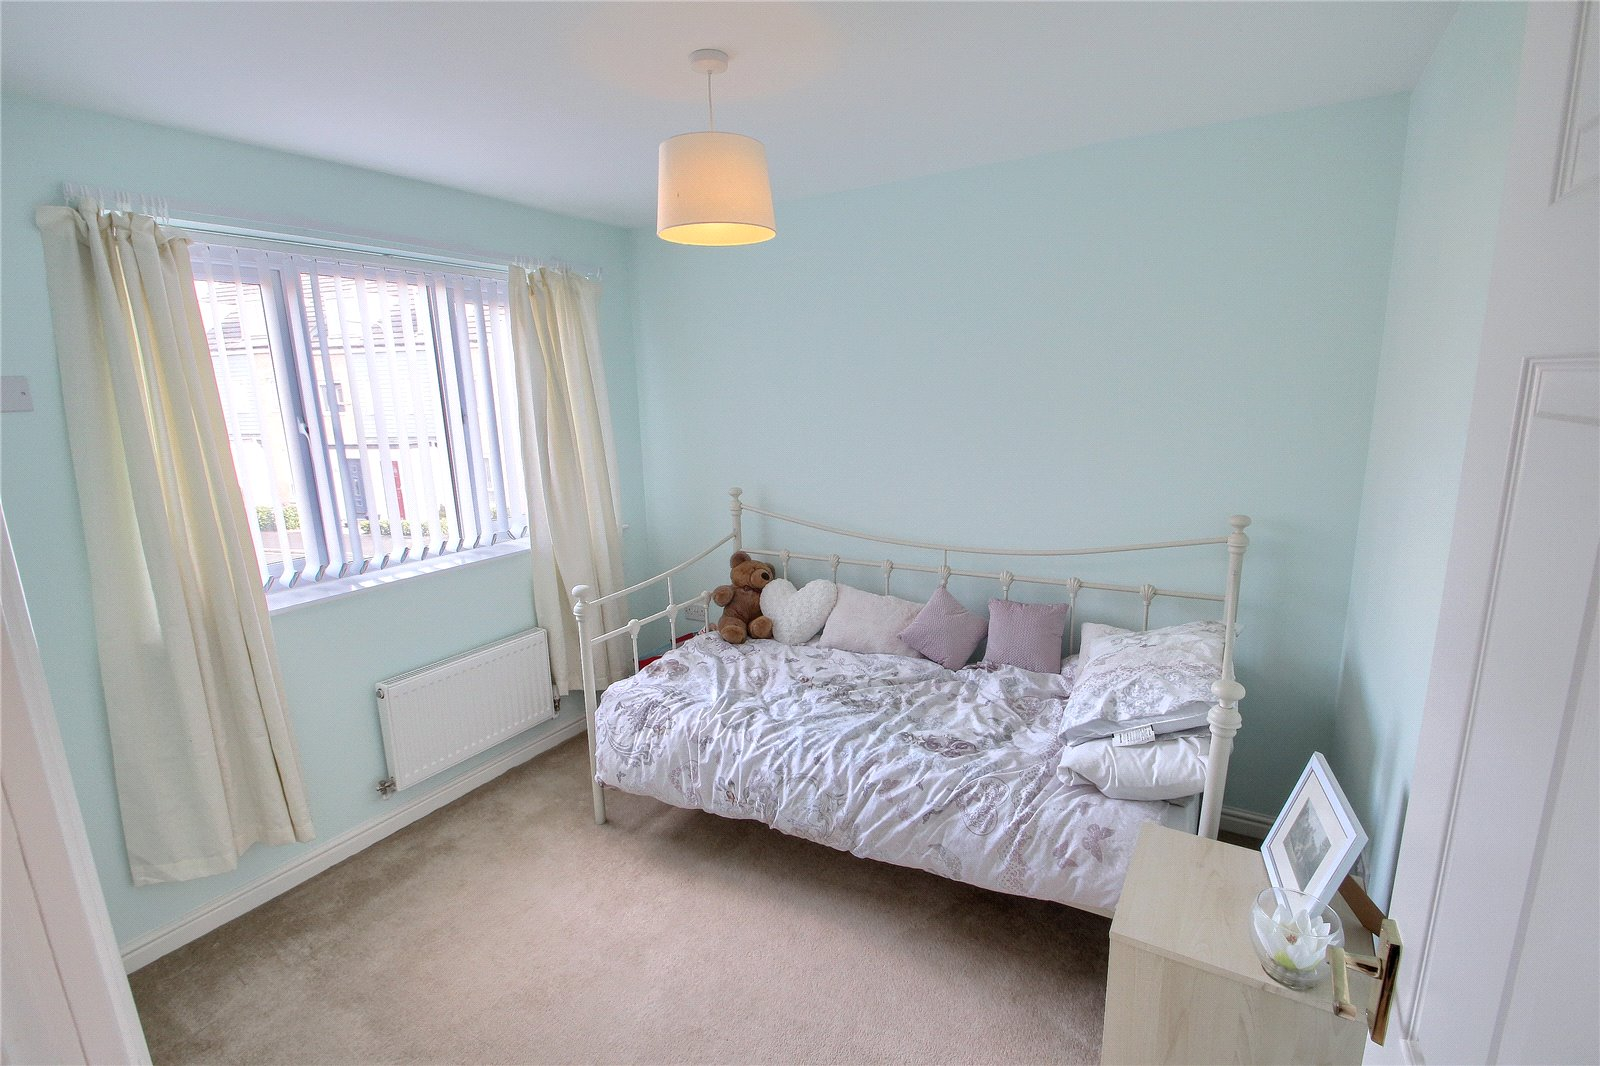 4 bed house for sale in Crimdon Beck Close, Whitewater Glade  - Property Image 8